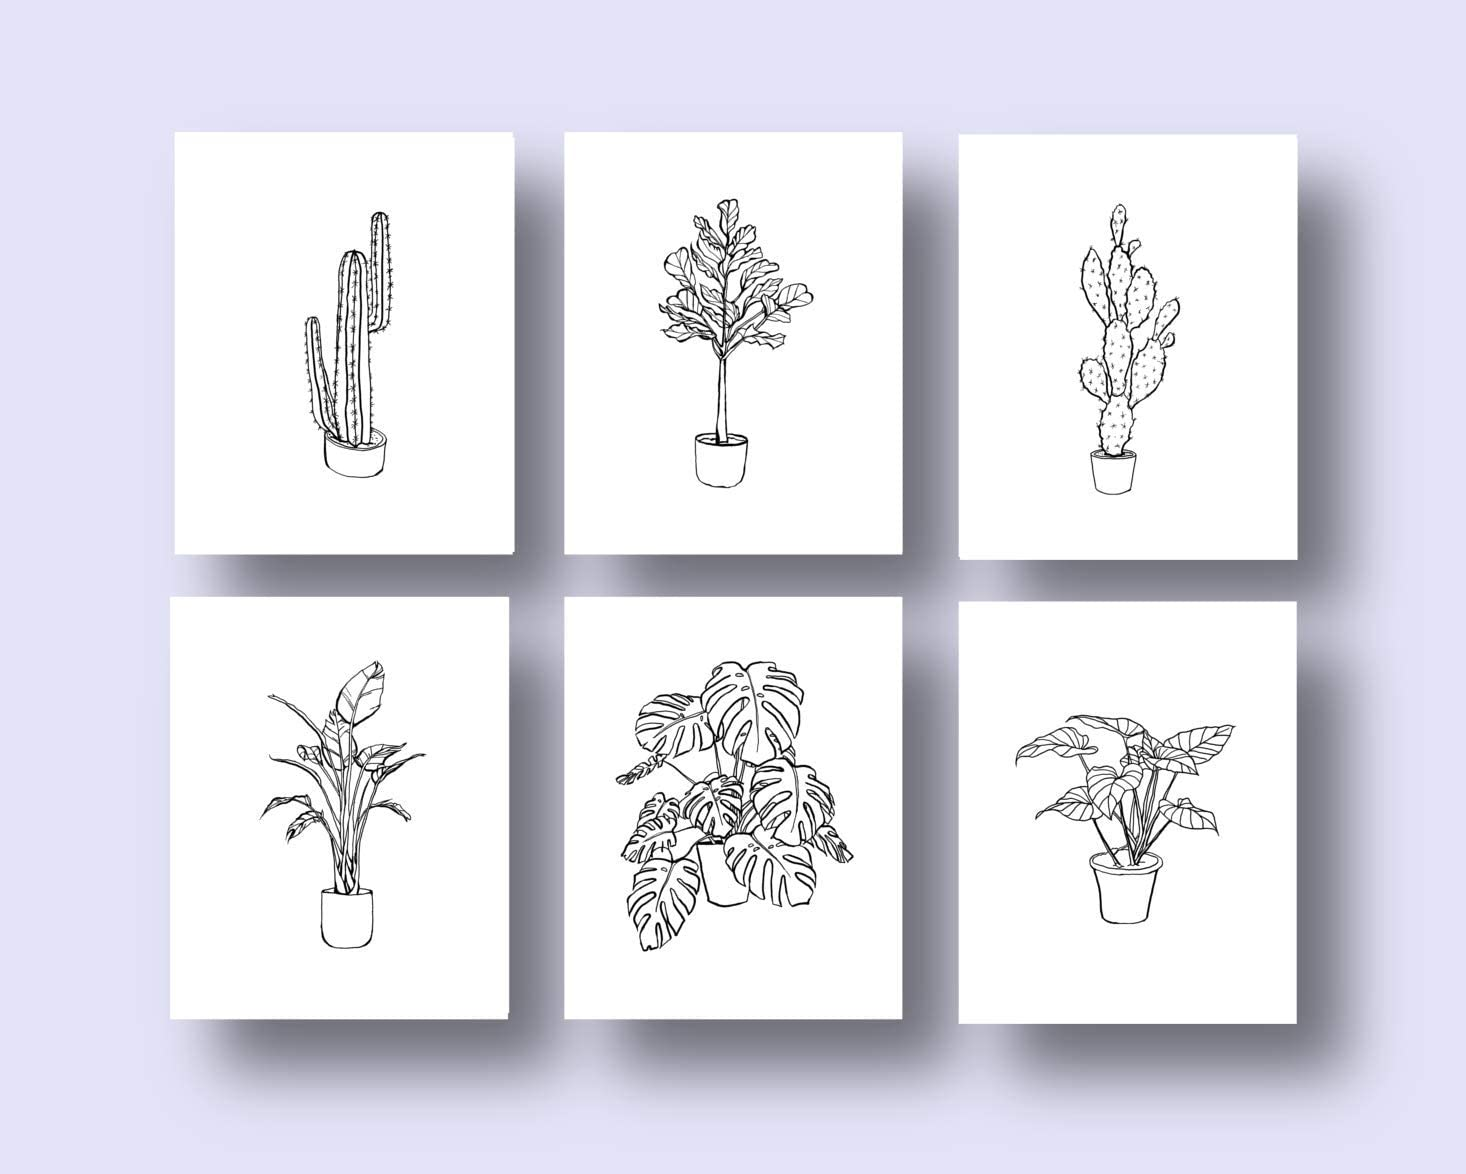 Ink Inc. Tropical Plants Botanical Prints Minimalist Modern Abstract Line Drawings Wall Art Minimal Black and White Home Decor - Set of 6-8x10 - Matte - Unframed